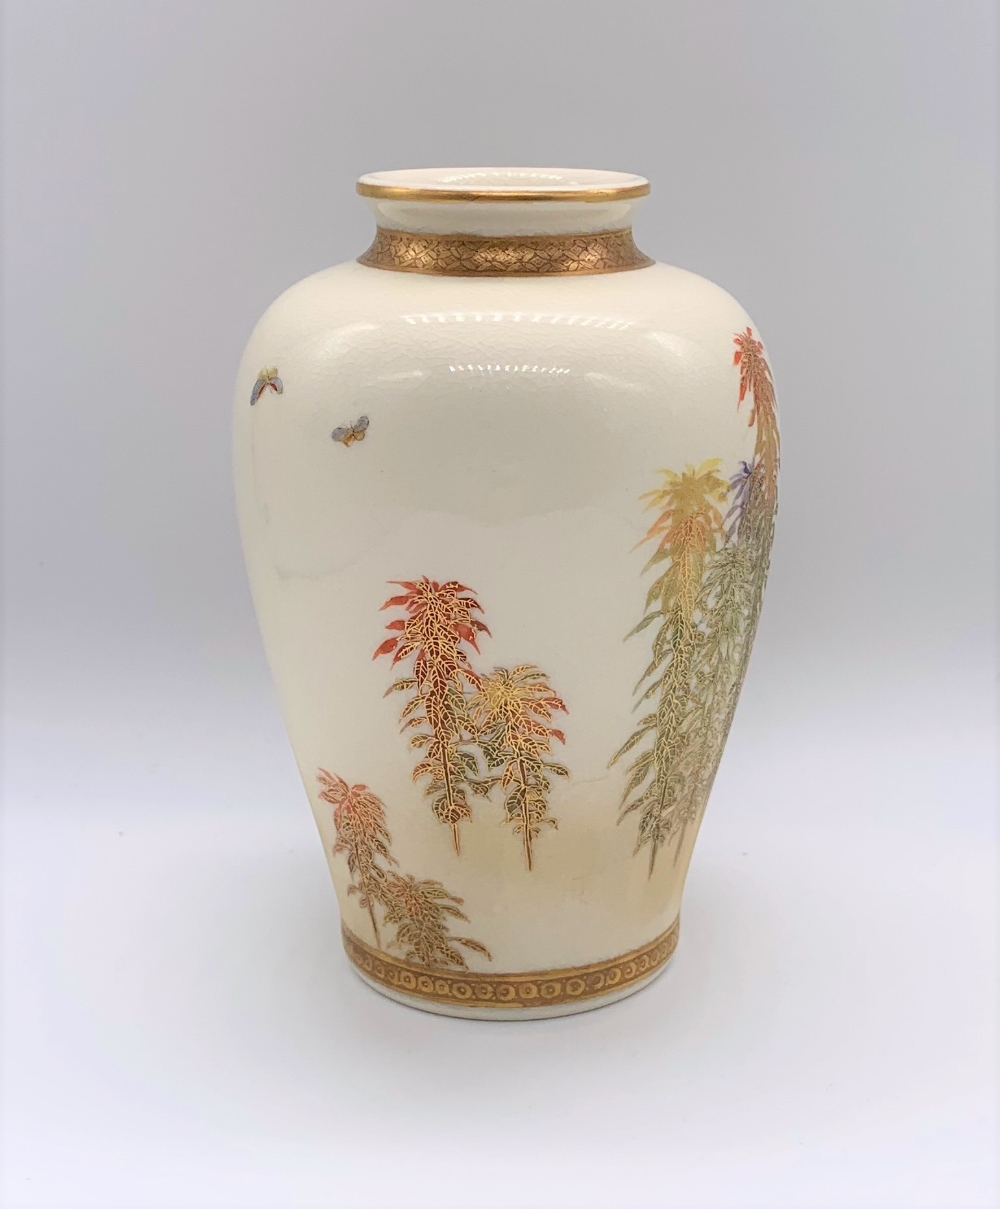 KINKOZAN; a Japanese Meiji period Satsuma vase of ovoid form decorated with butterflies above - Image 4 of 9